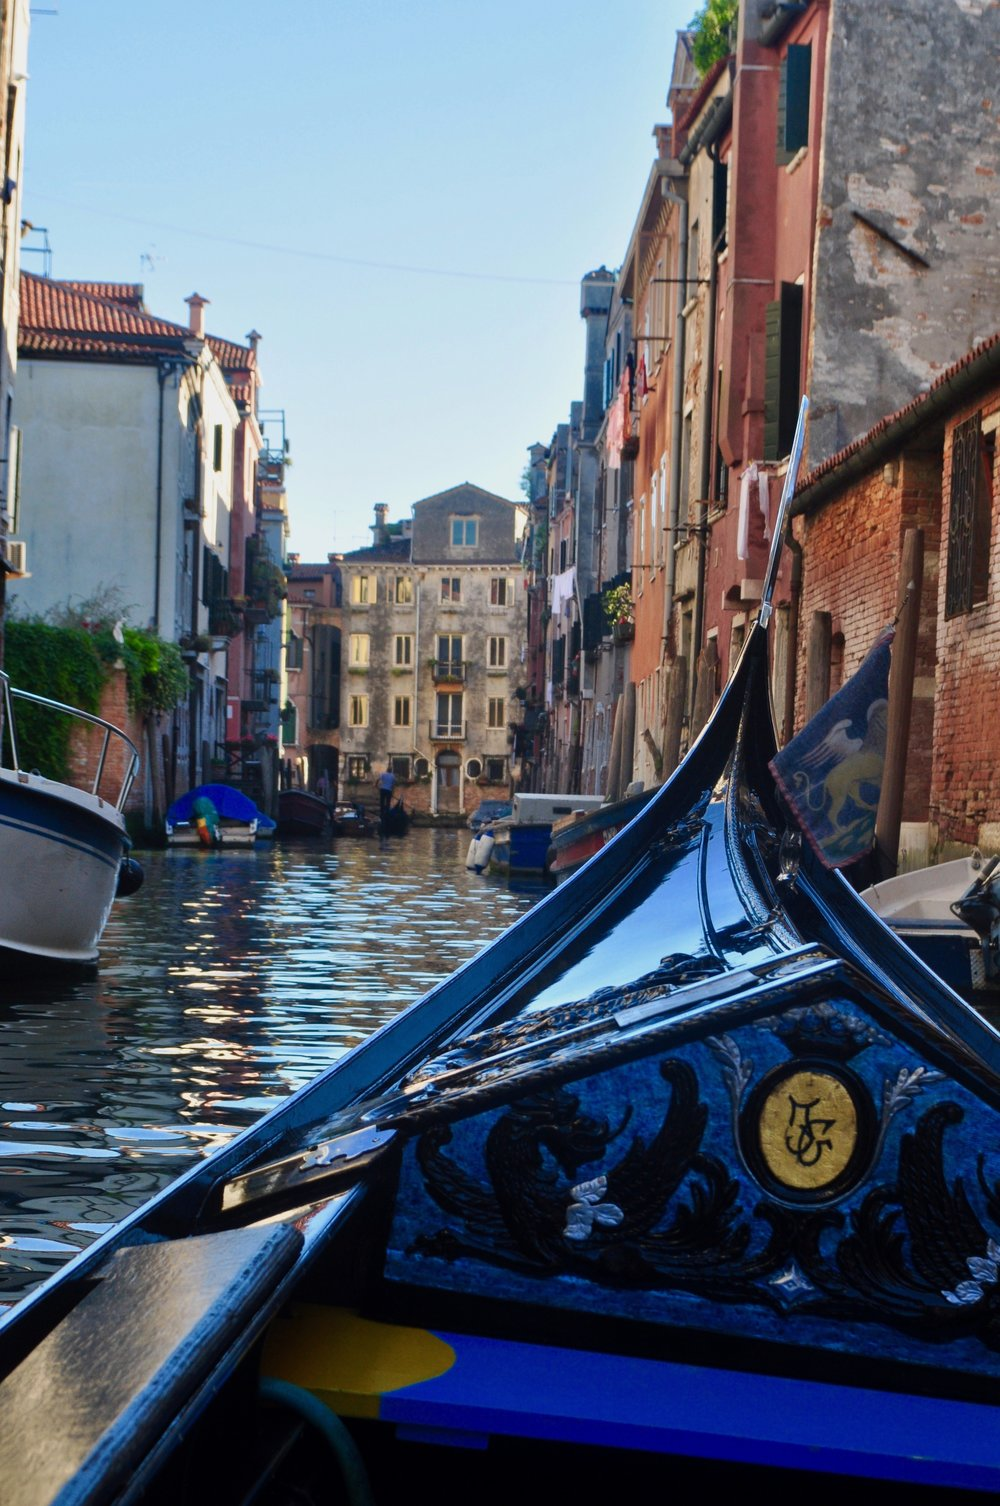 Gondola Ride through the Canals of Venice, in the Cannaregio neighborhood